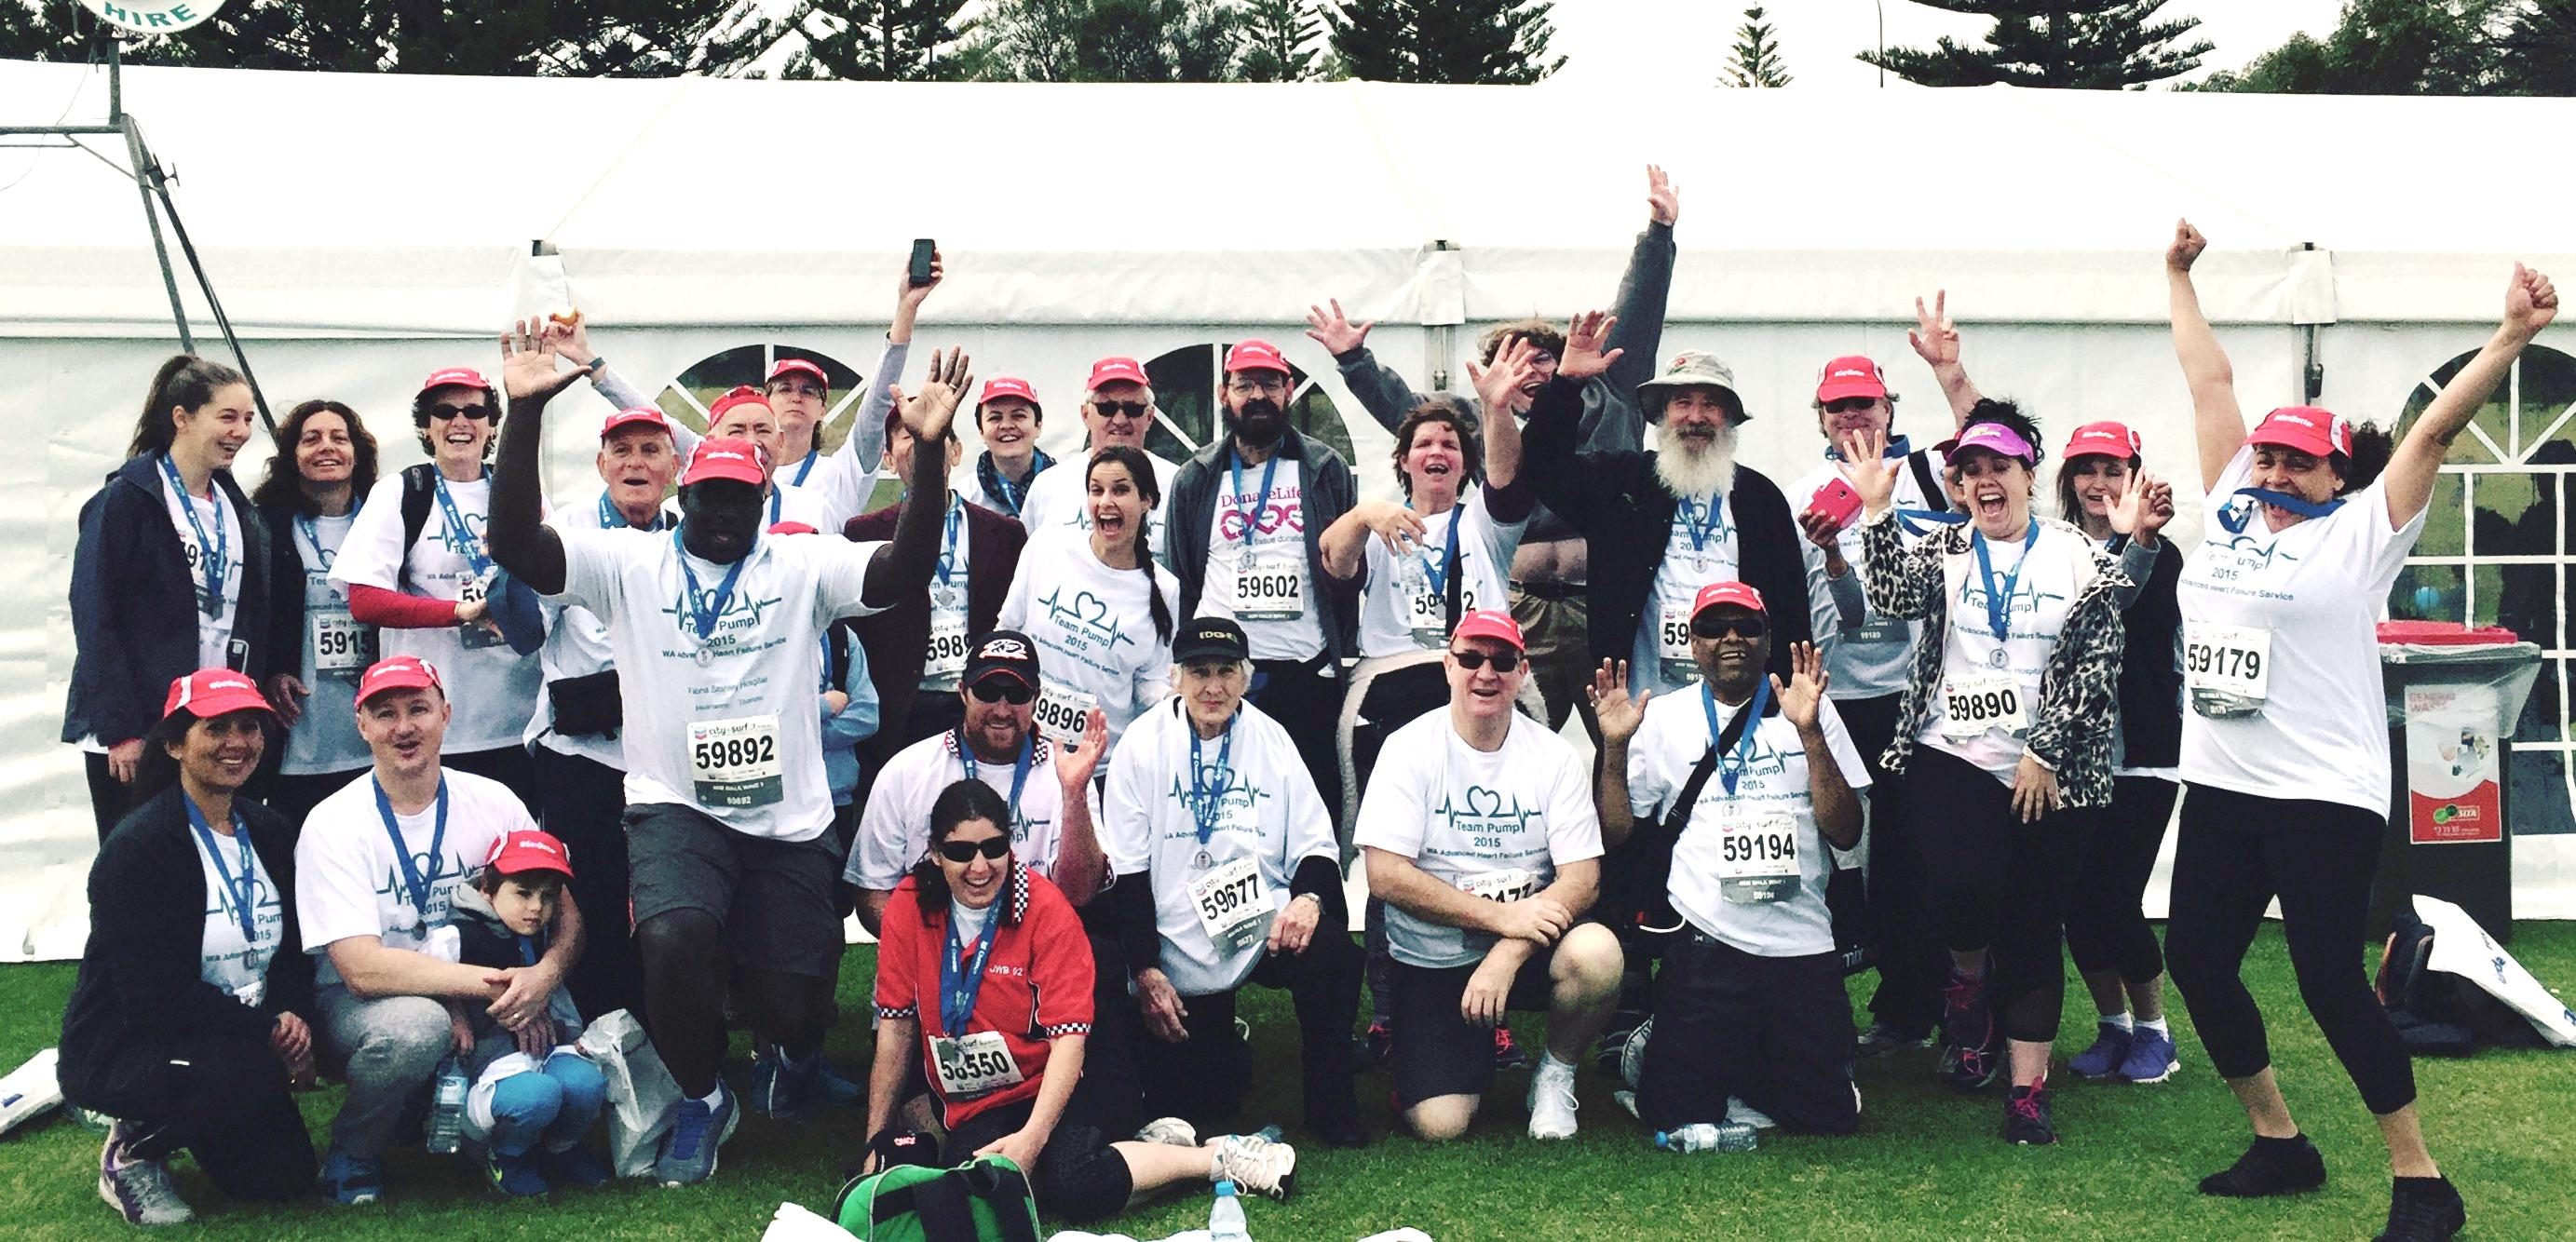 Patients, carers and staff complete the 2015 City to Surf